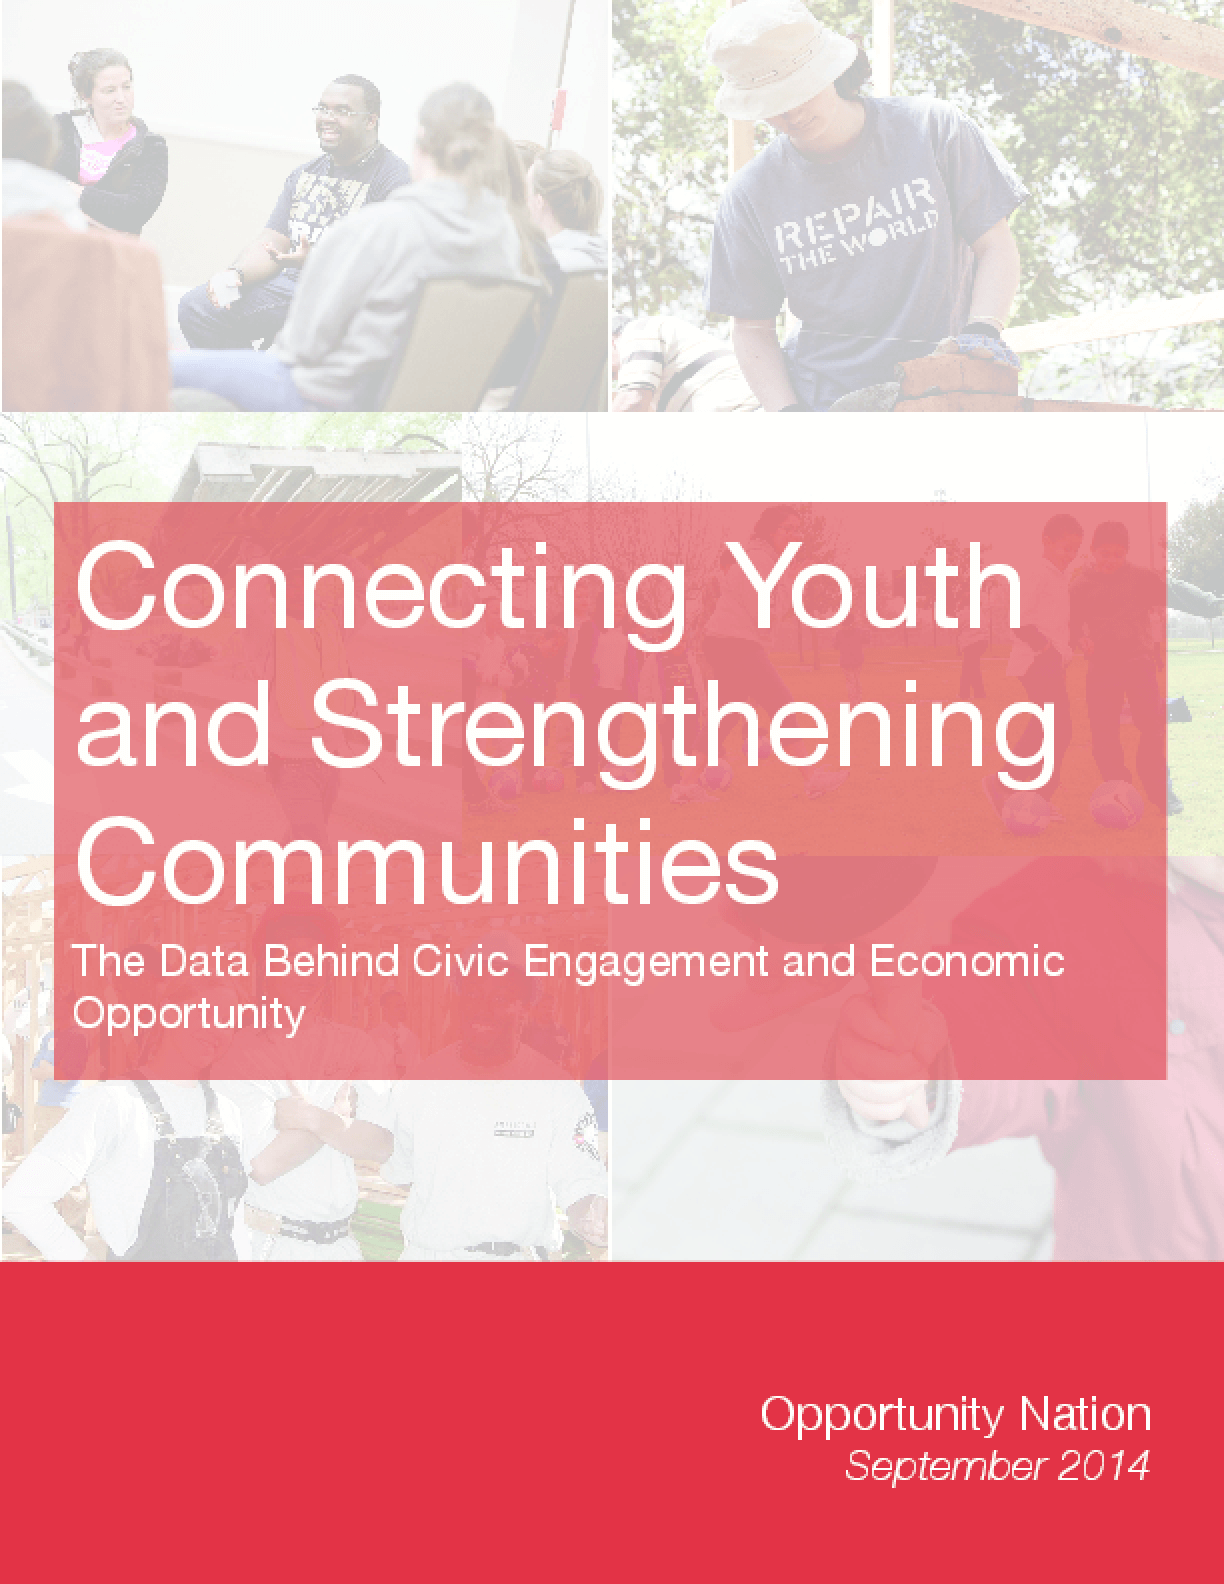 Connecting Youth and Strengthening Communities: The Data Behind Civic Engagement and Economic Opportunity